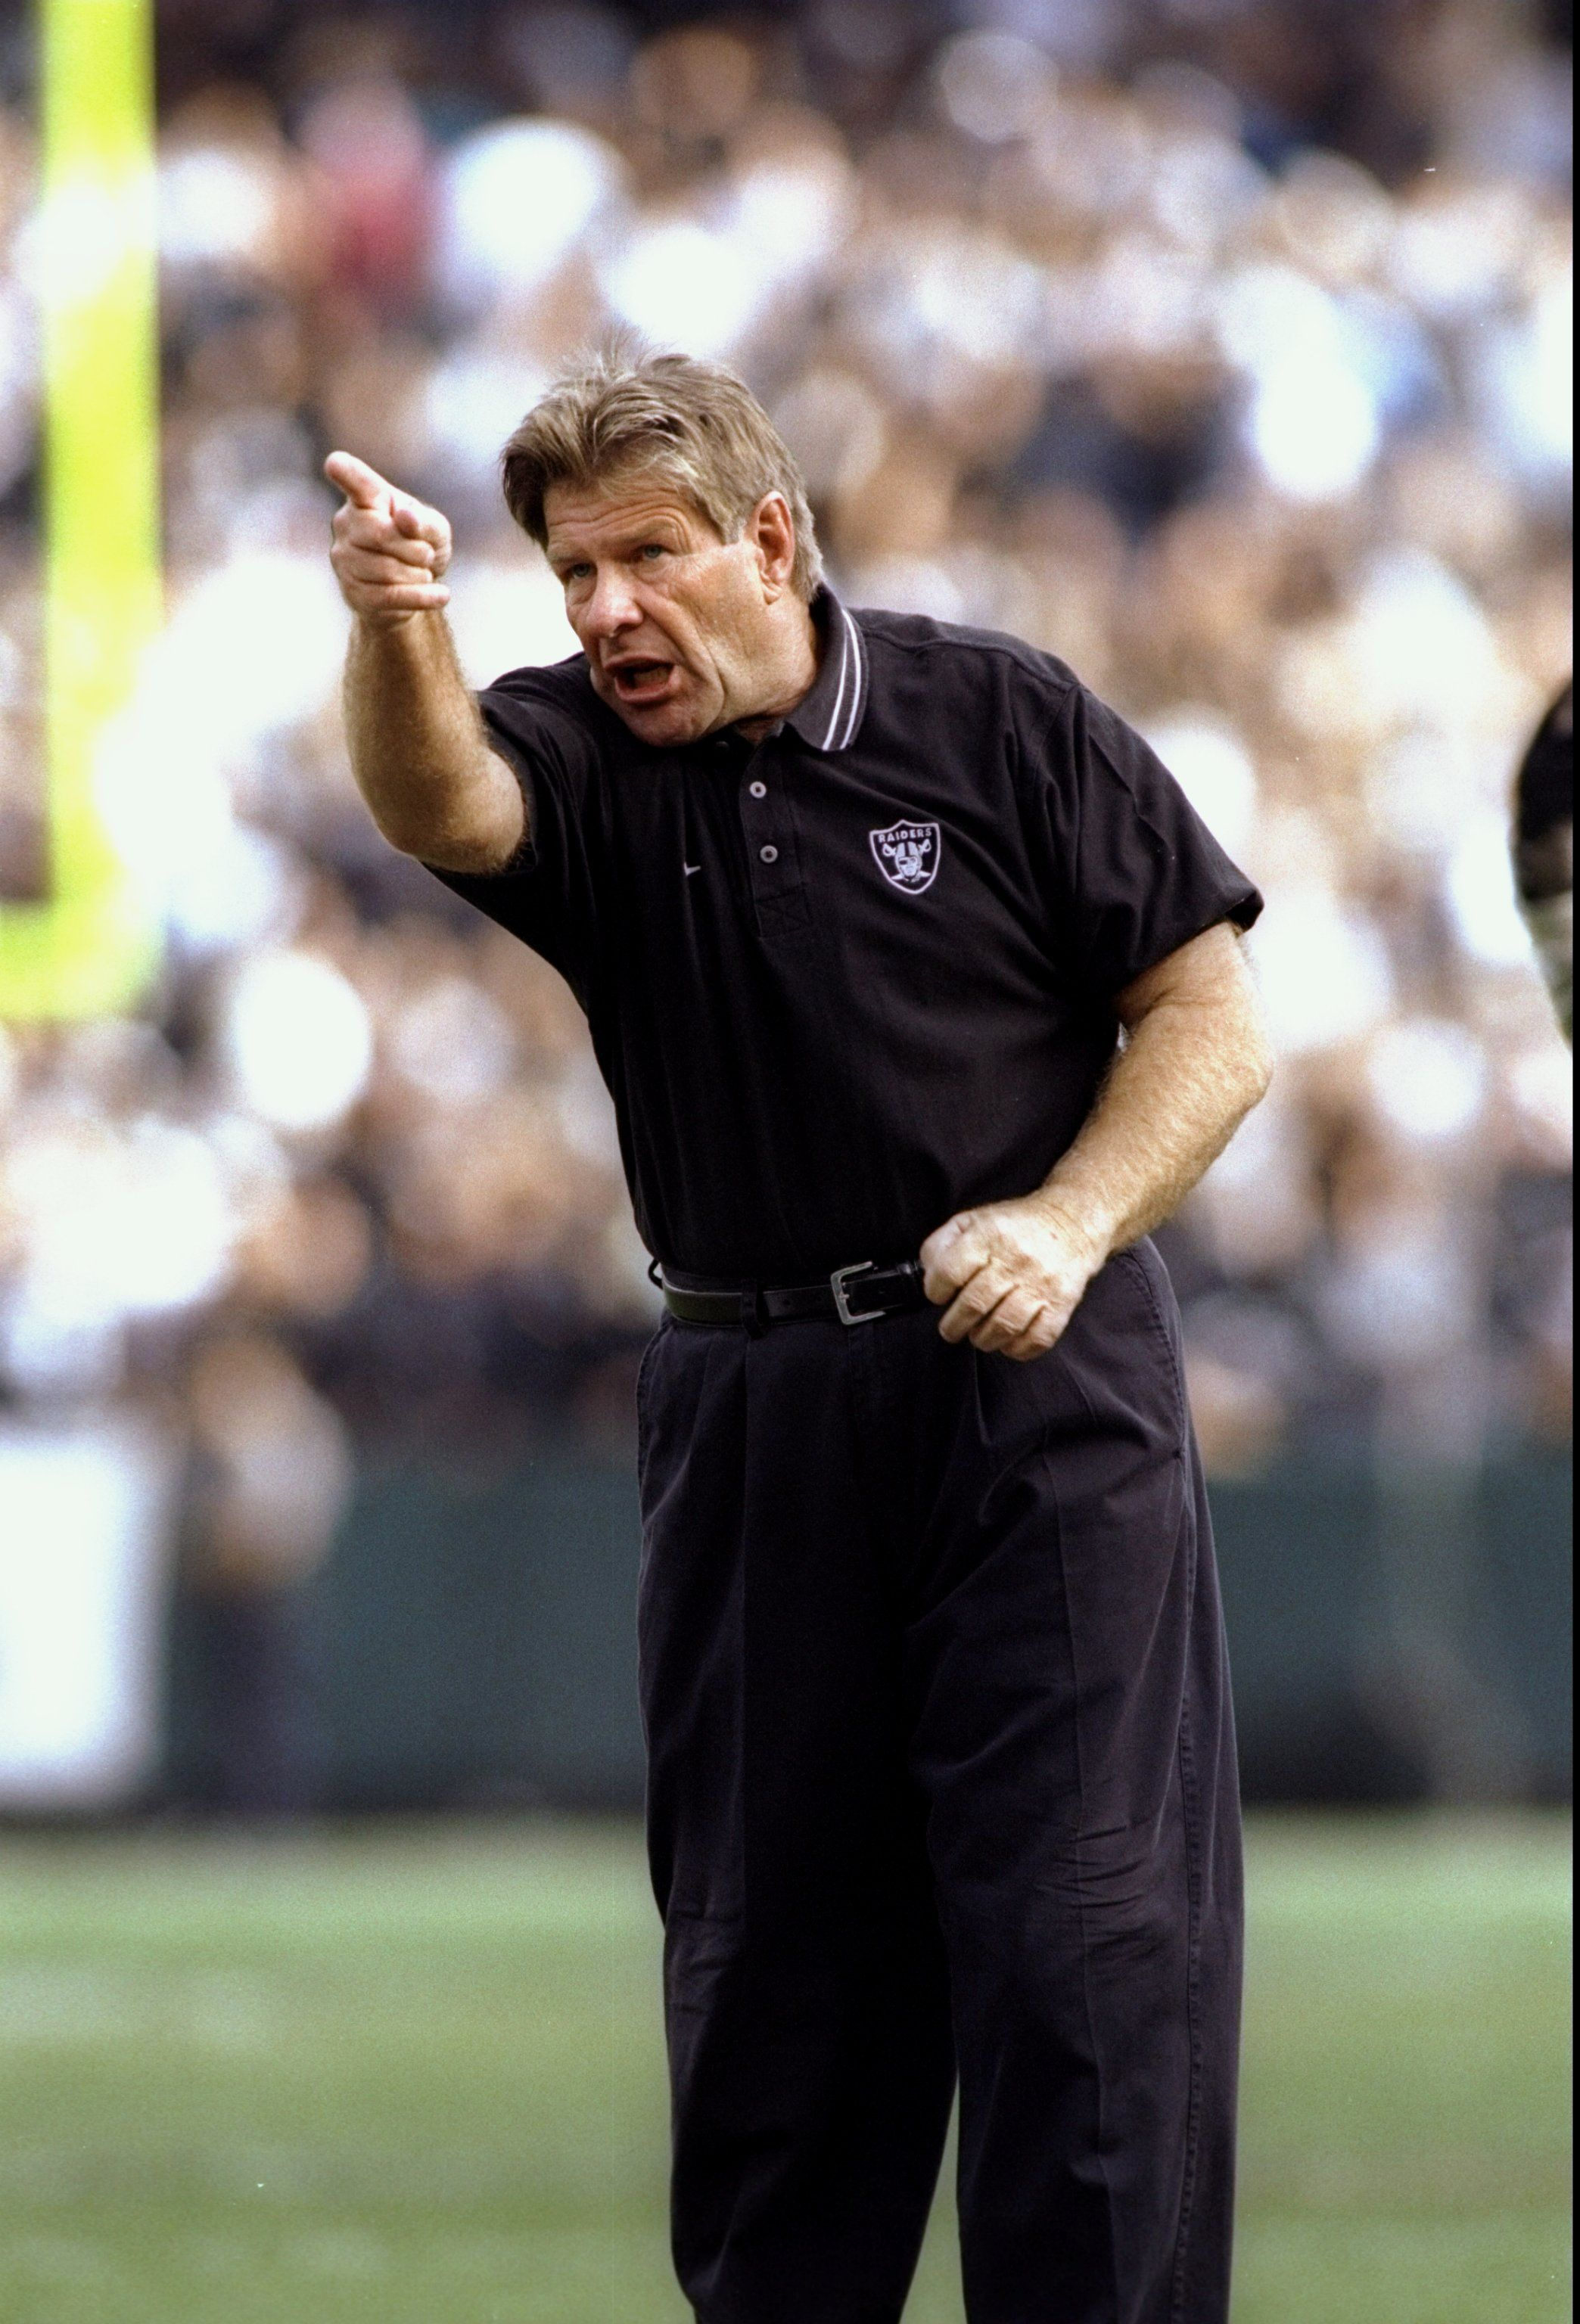 Joe Bugel gestures from the sidelines during a game of the Oakland Raiders against the Denver Broncos at the Oakland Alameda County Coliseum on October 19, 1997 | Photo: Getty Images